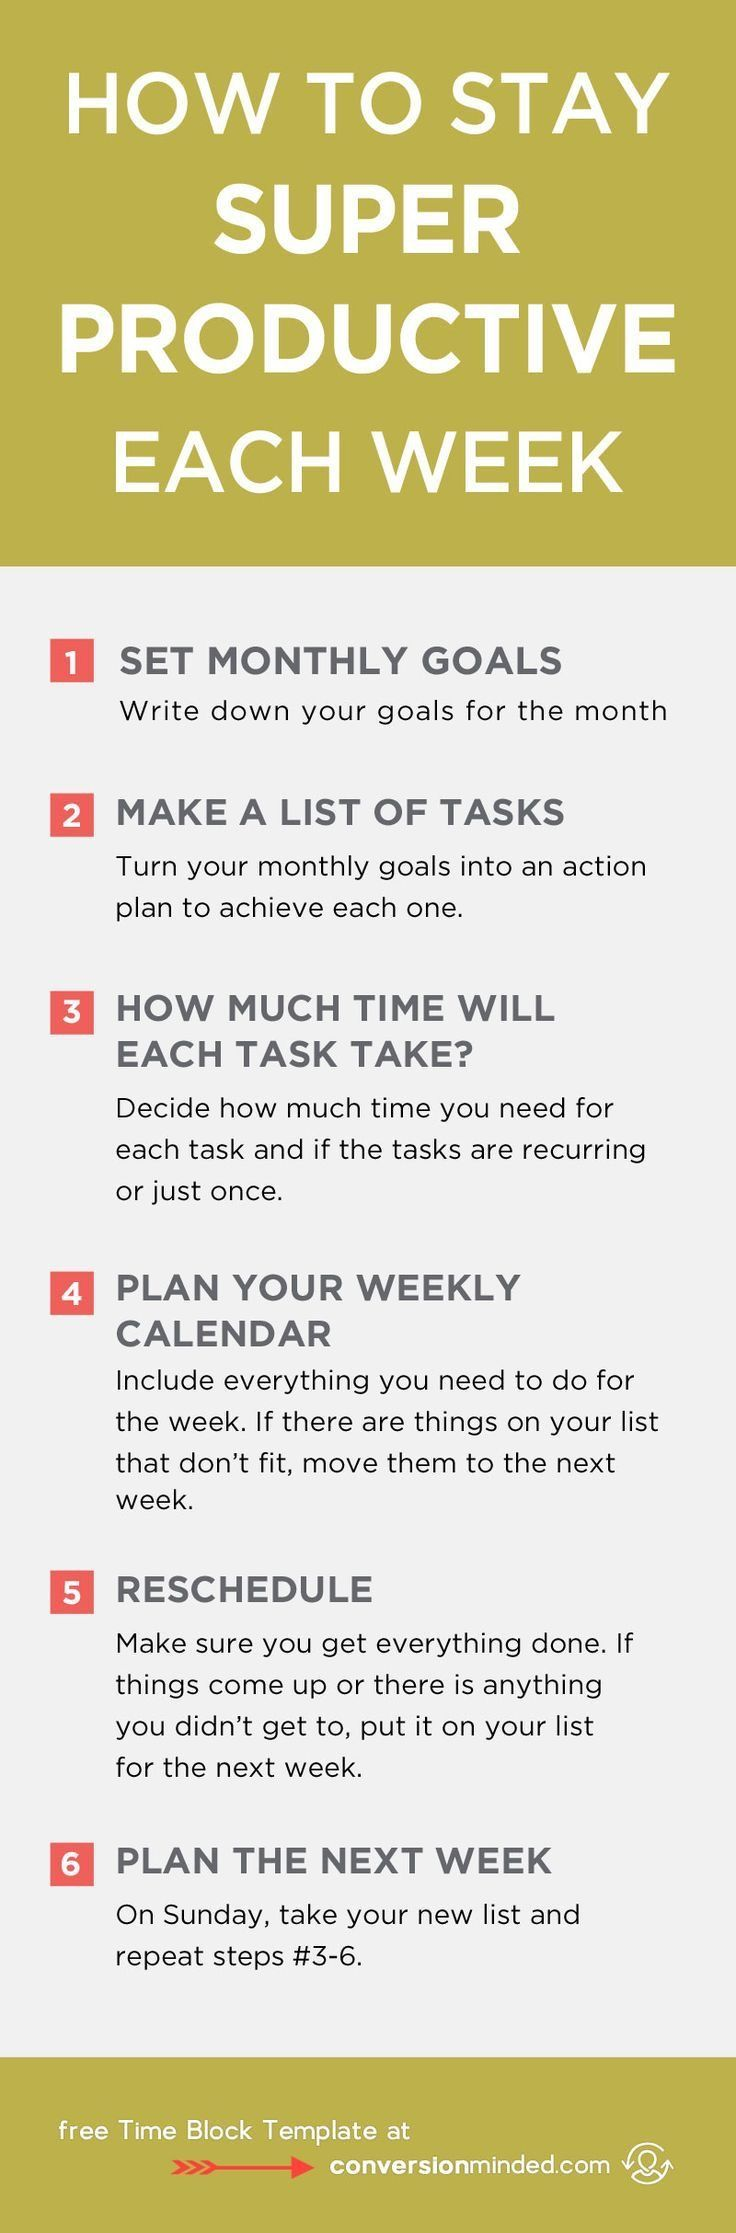 Pin by Michael Savva on Business Time management, Time